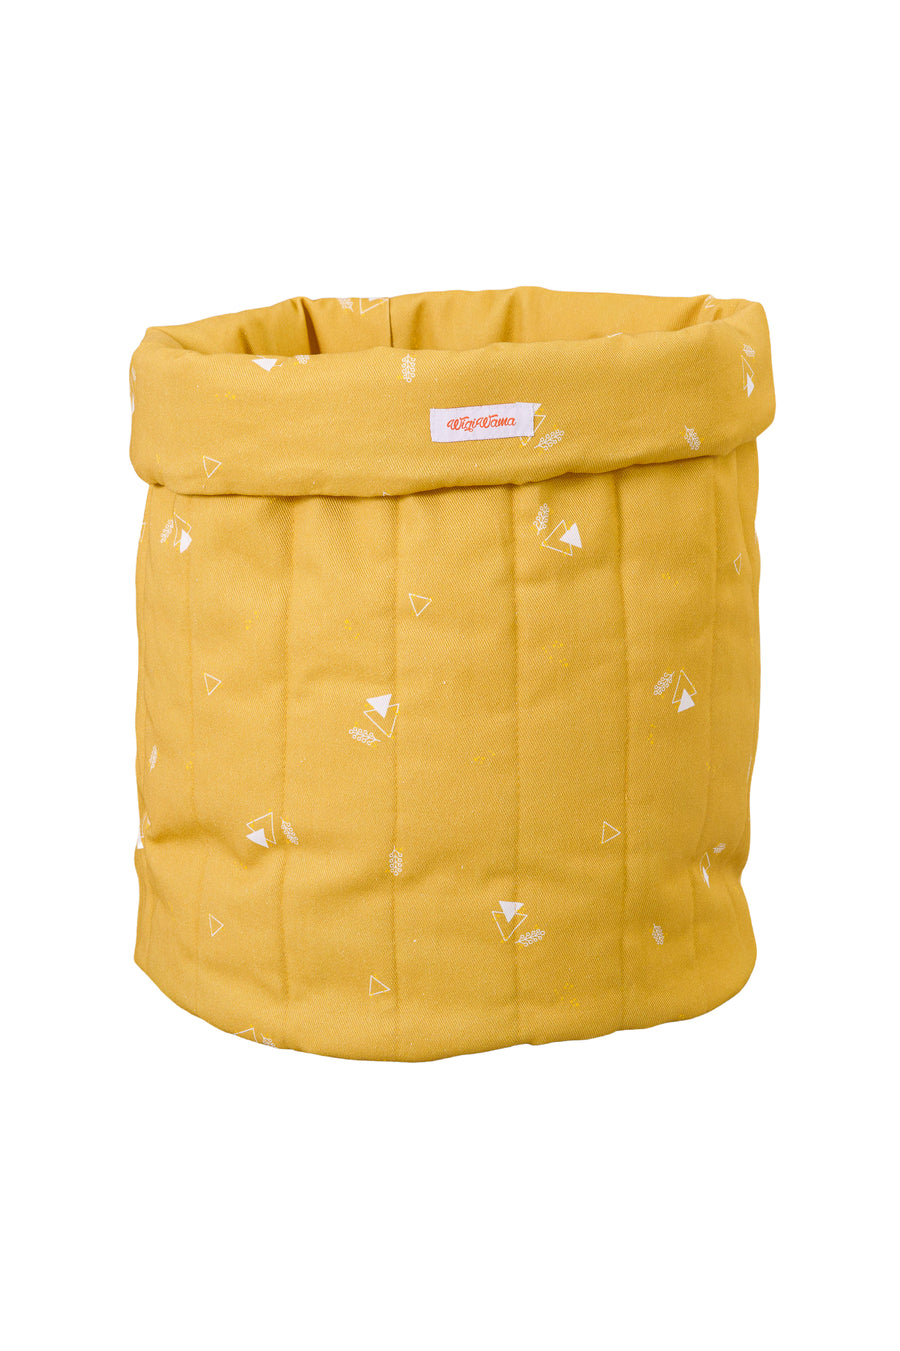 Honey Mustard Toy Bag